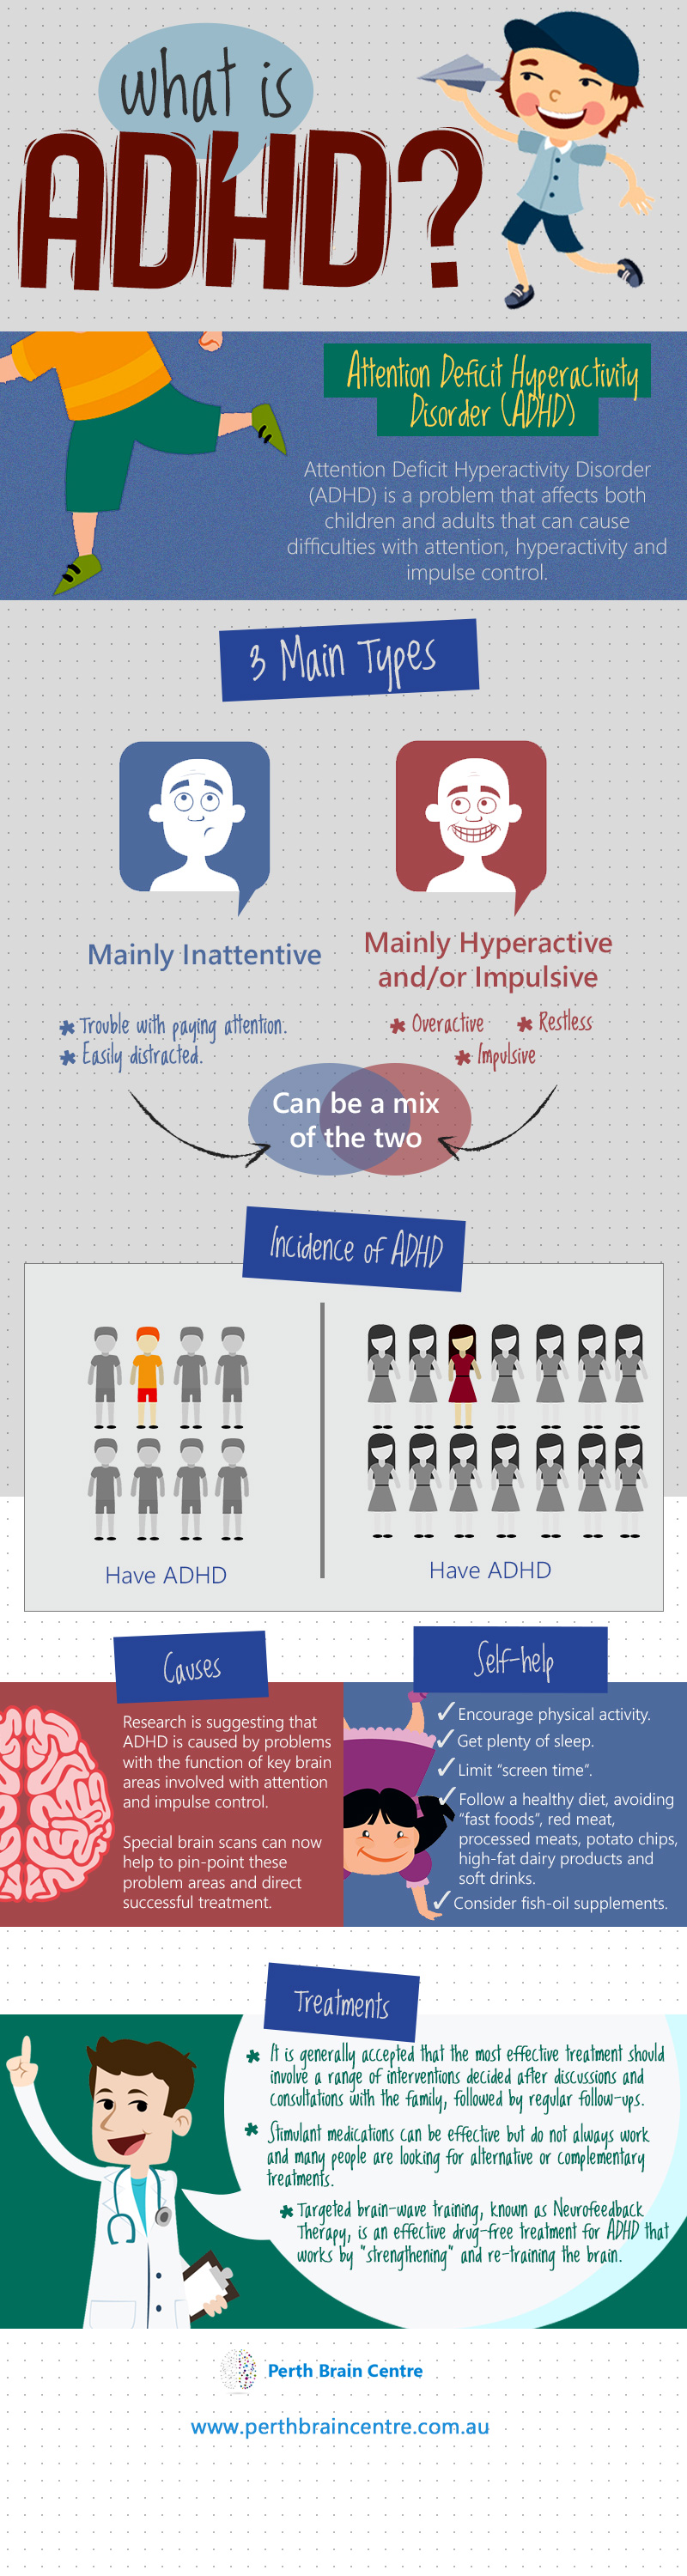 What is ADHD? ADHD Definition and Treatment [INFOGRAPHIC]